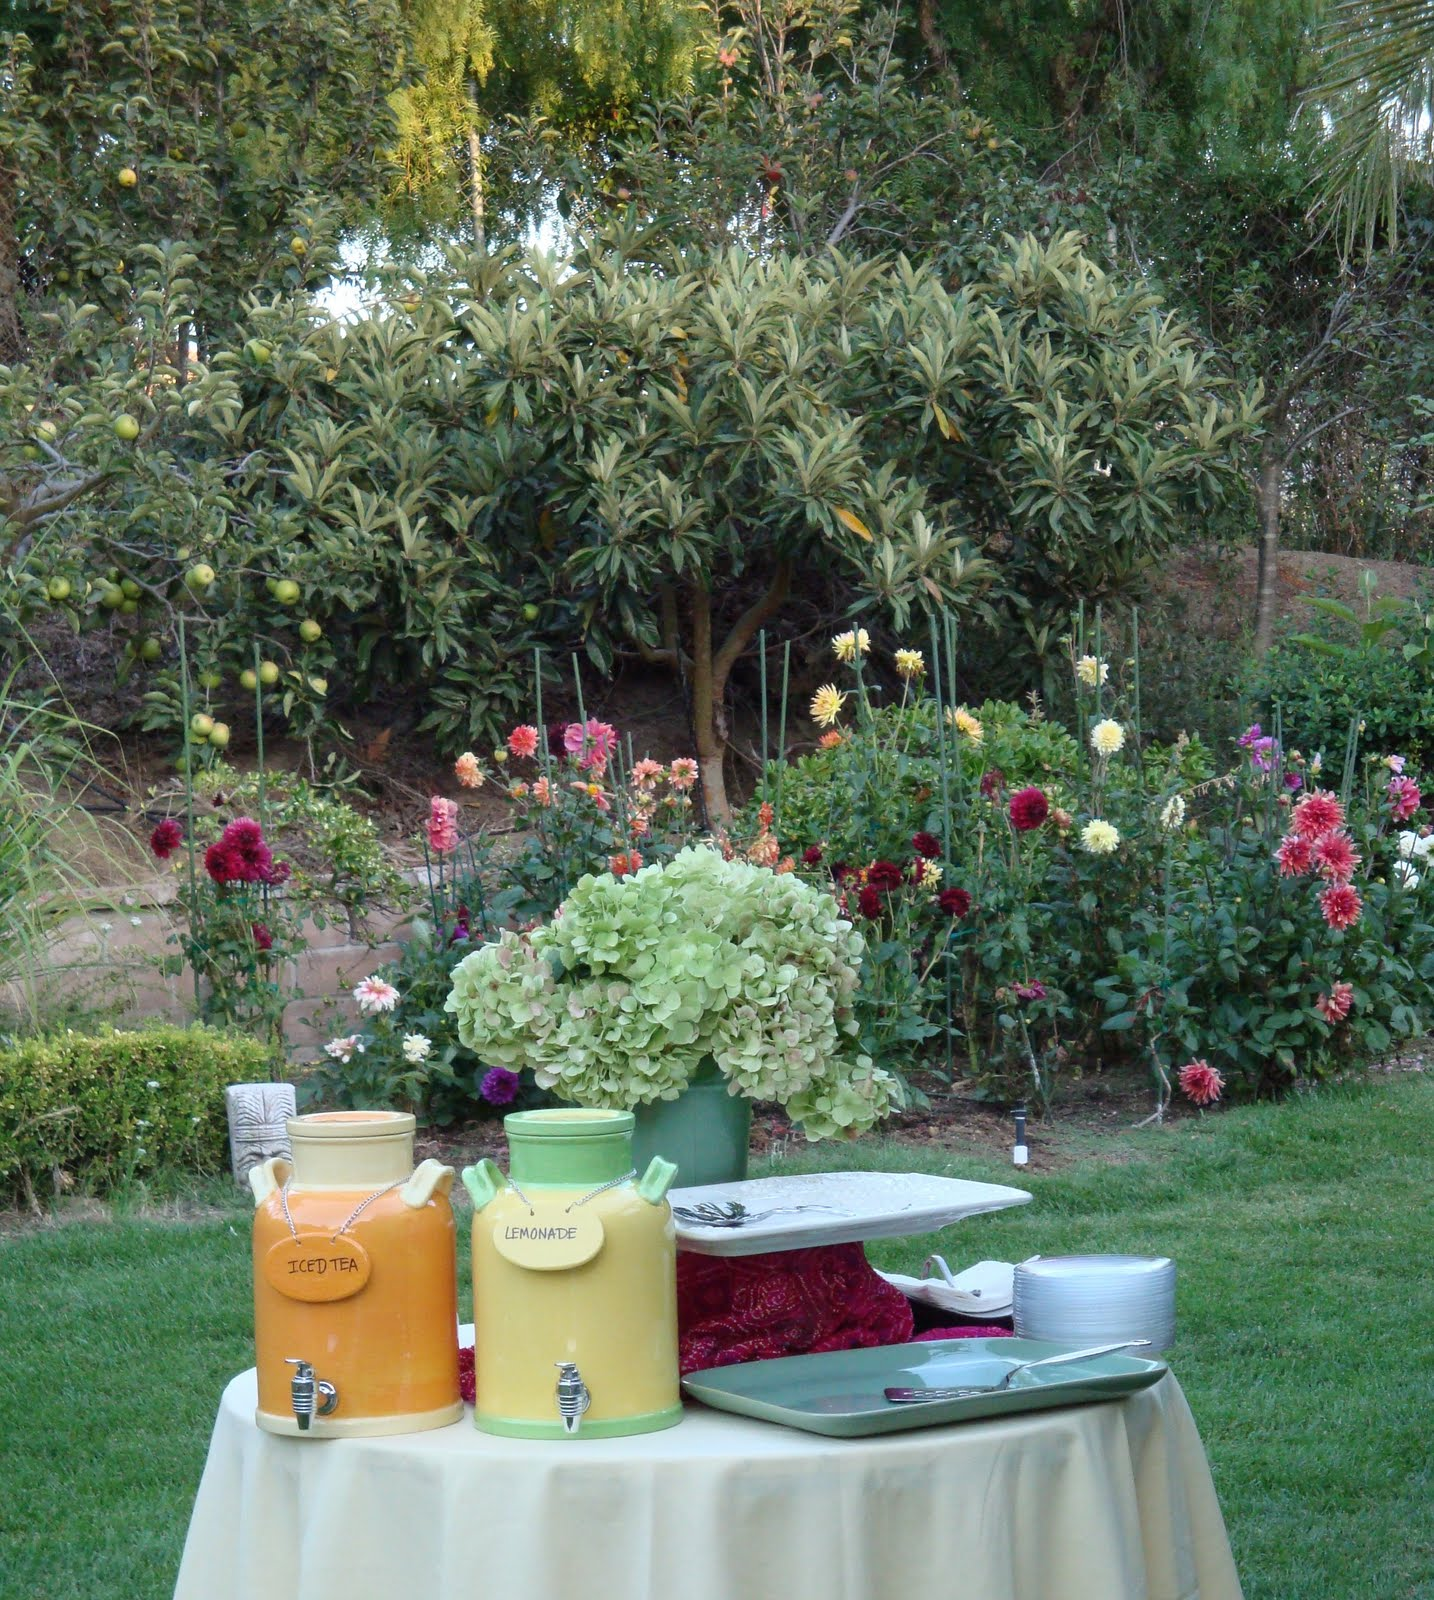 Entertaining From An Ethnic Indian Kitchen: Garden Party II